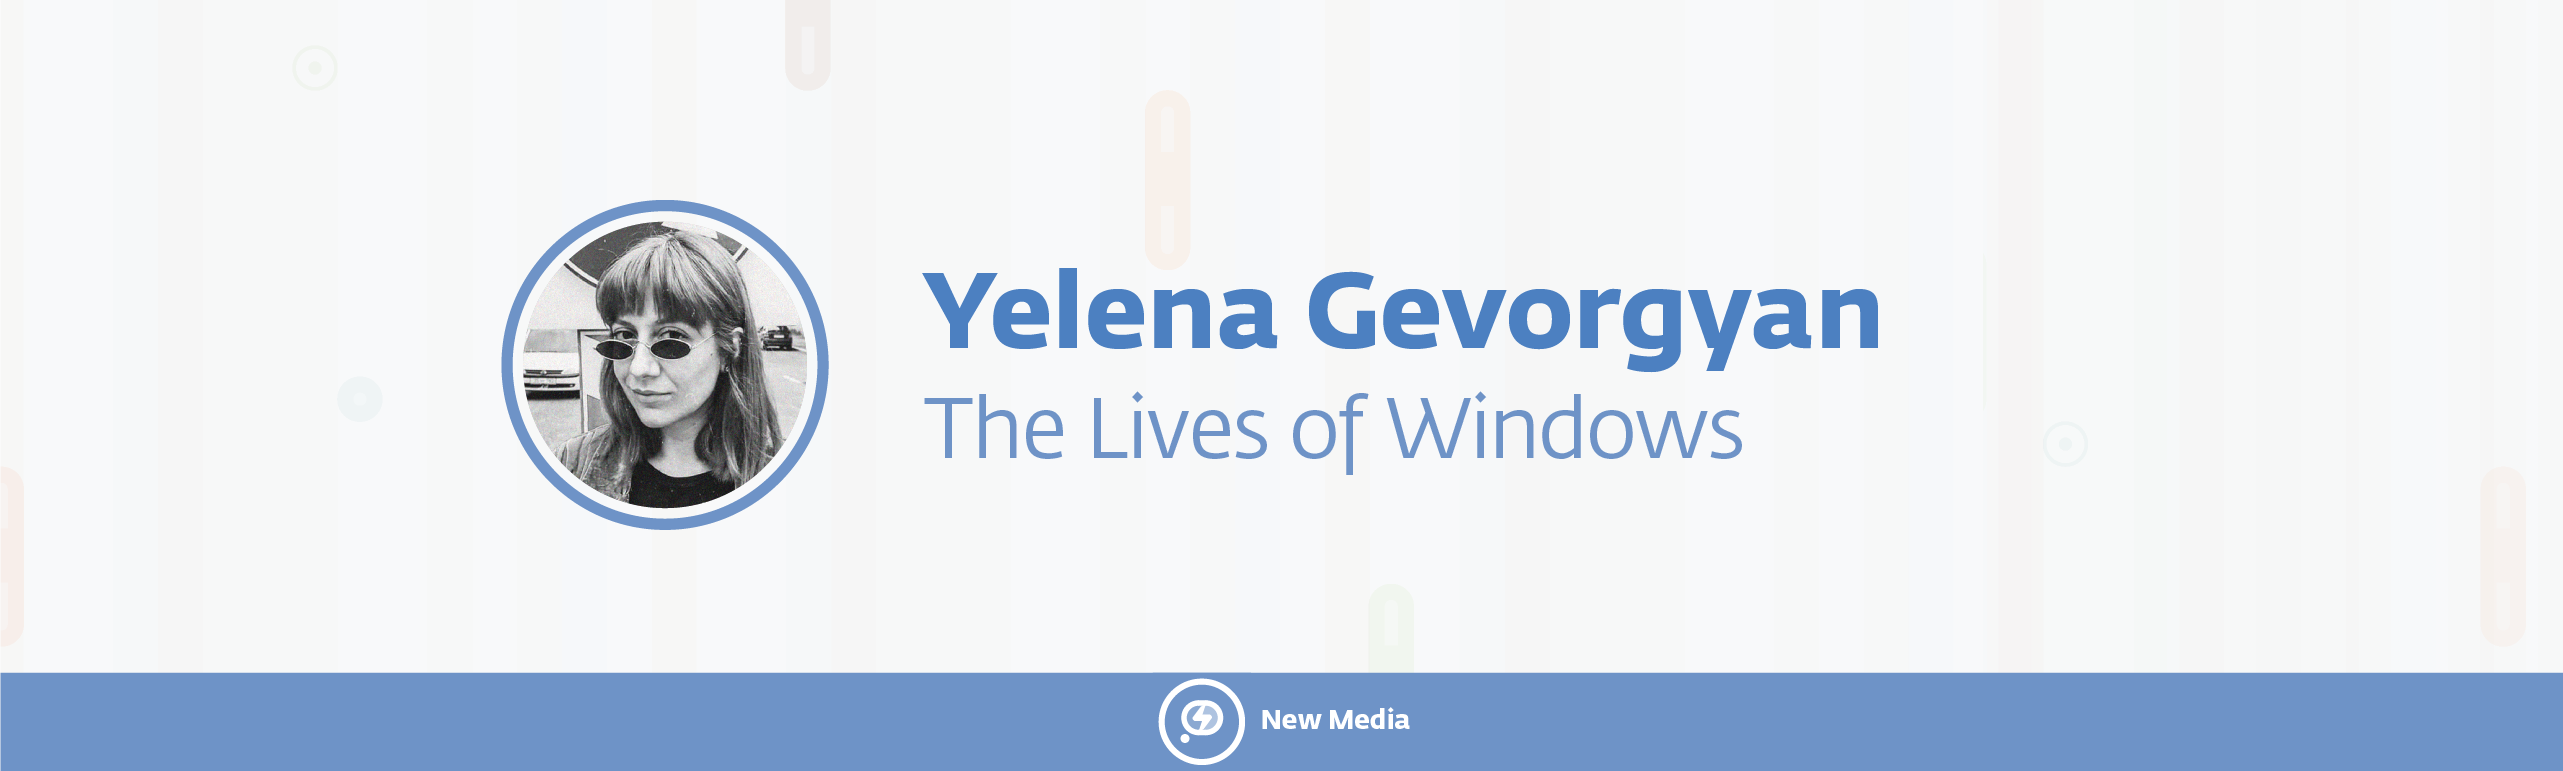 38 - The Lives of Windows